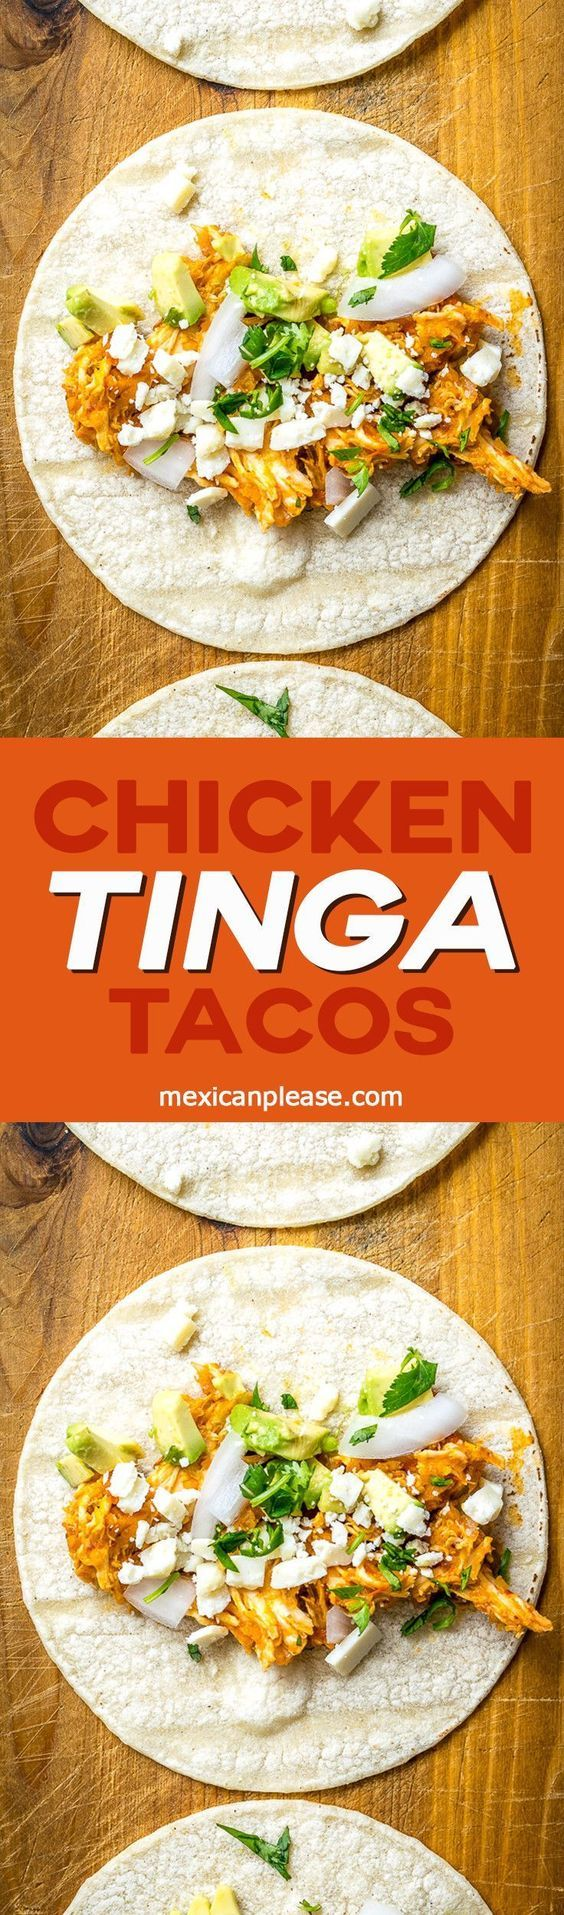 These Chicken Tinga Tacos use tomatillos and chipotles to create incredible flavor and they definitely qualify as Tingalicious!!  http://mexicanplease.com